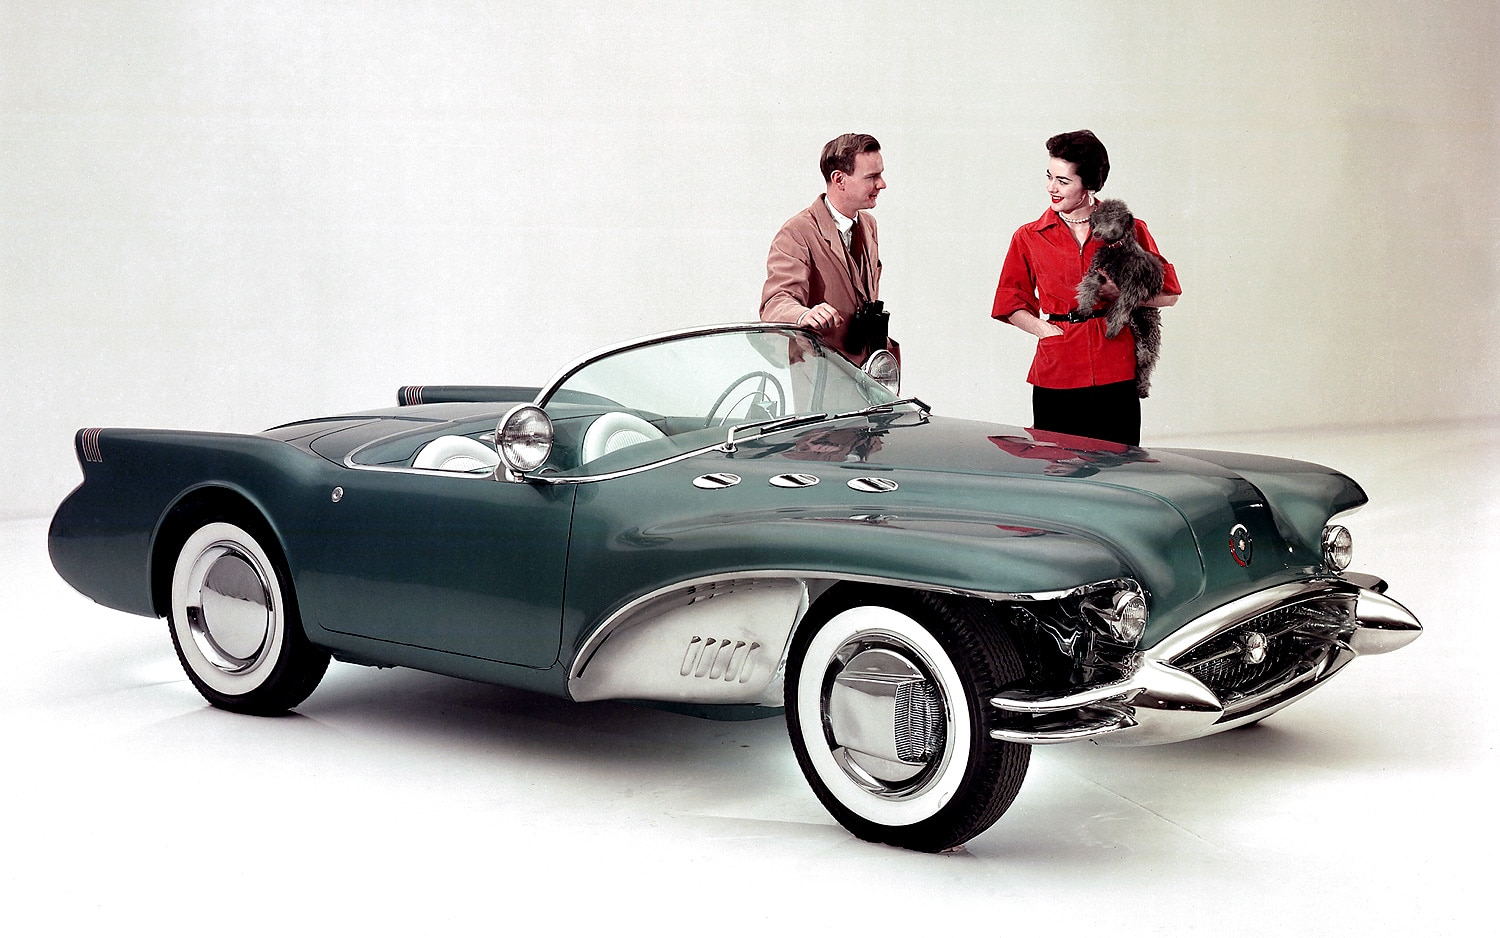 The Eleven Best Buicks Of Past 110 Years 1951 Buick Skylark Convertible For Sale Show More